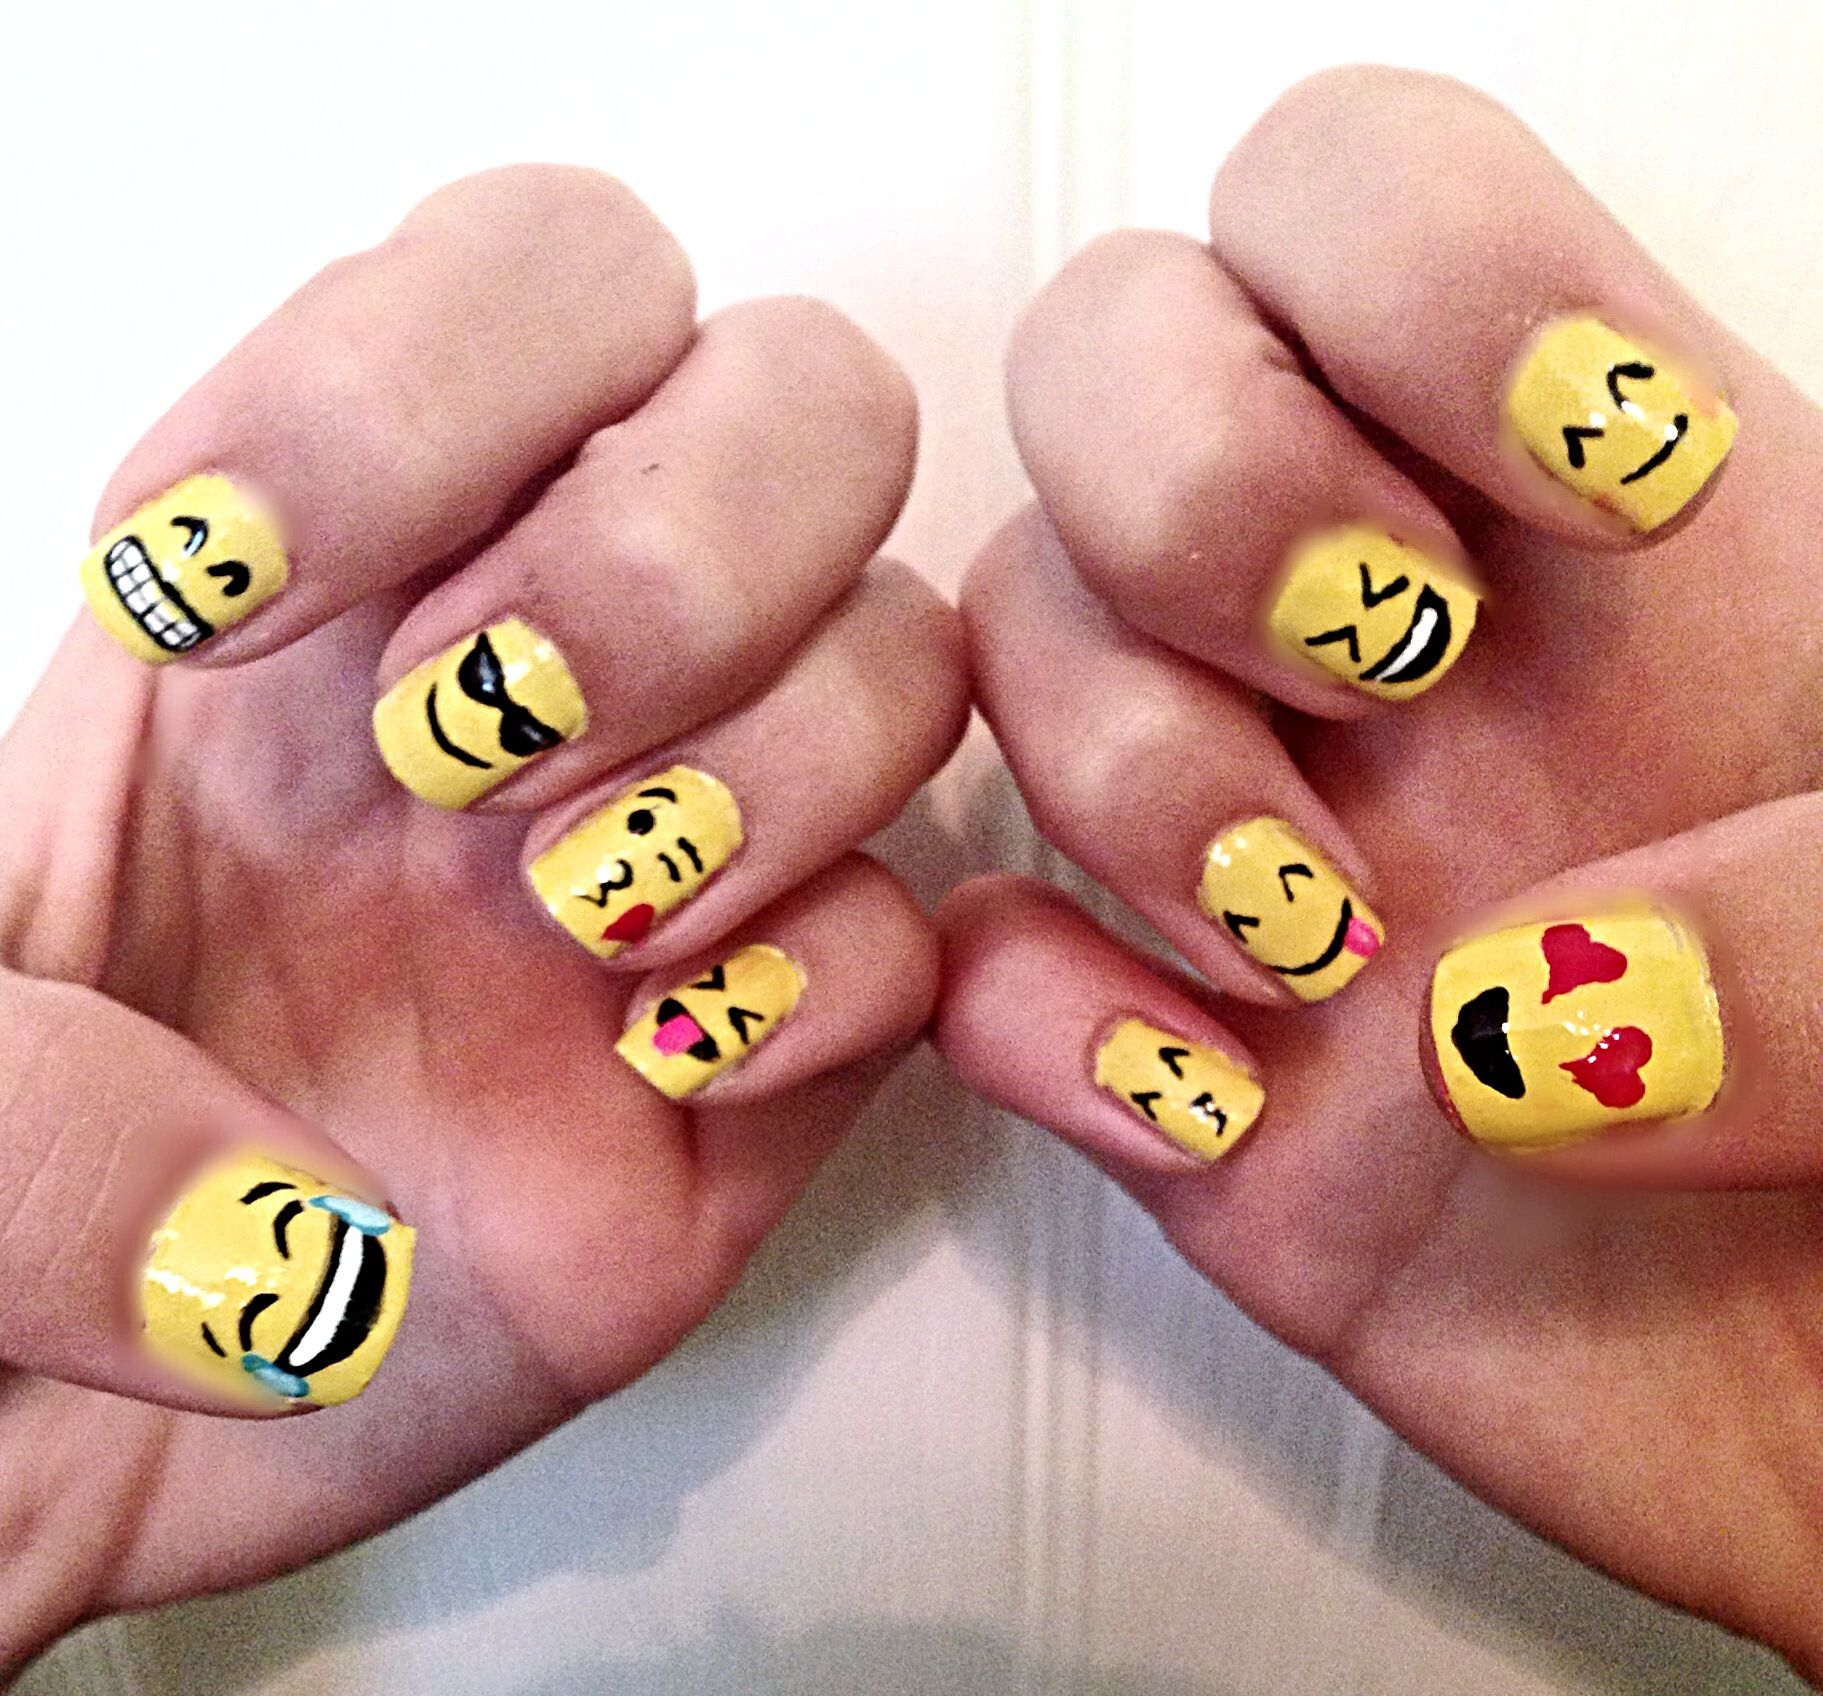 Emoji Nail Art Tutorial : Emoji nails my nail art